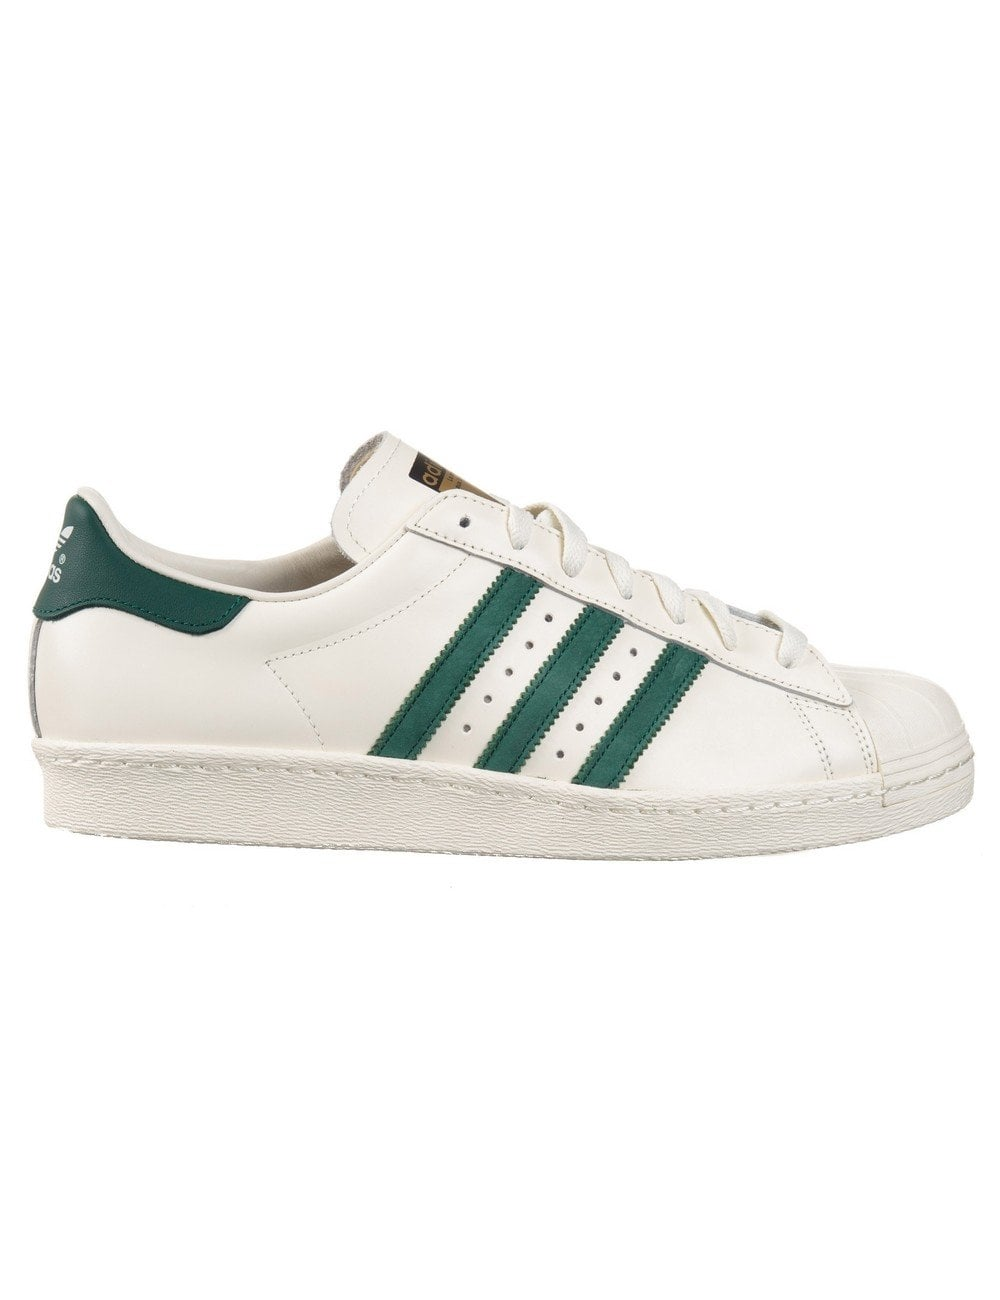 Superstar 80s Delux Shoes - Vintage White/